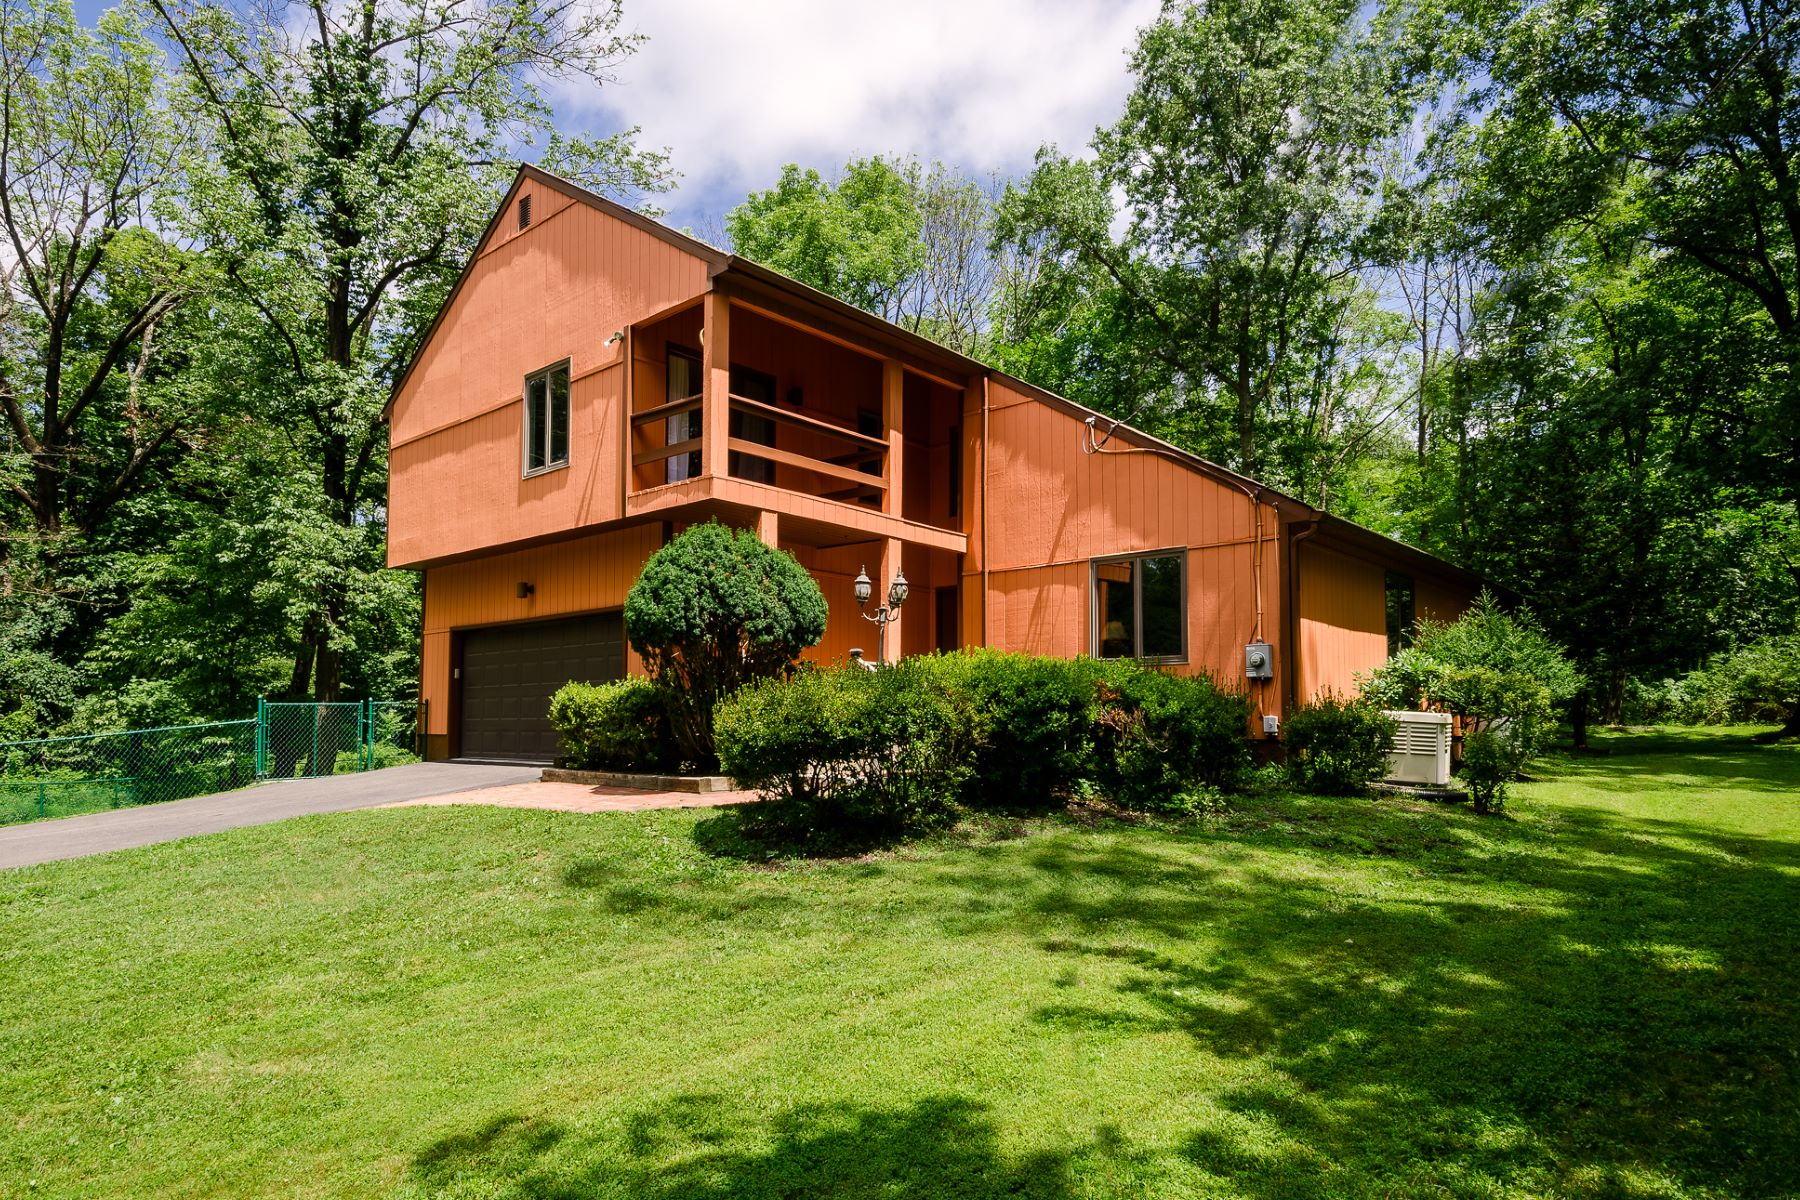 Single Family Home for Sale at A Contemporary Getaway Mere Miles From Princeton 150 Old Georgetown Road, Princeton, New Jersey 08540 United States